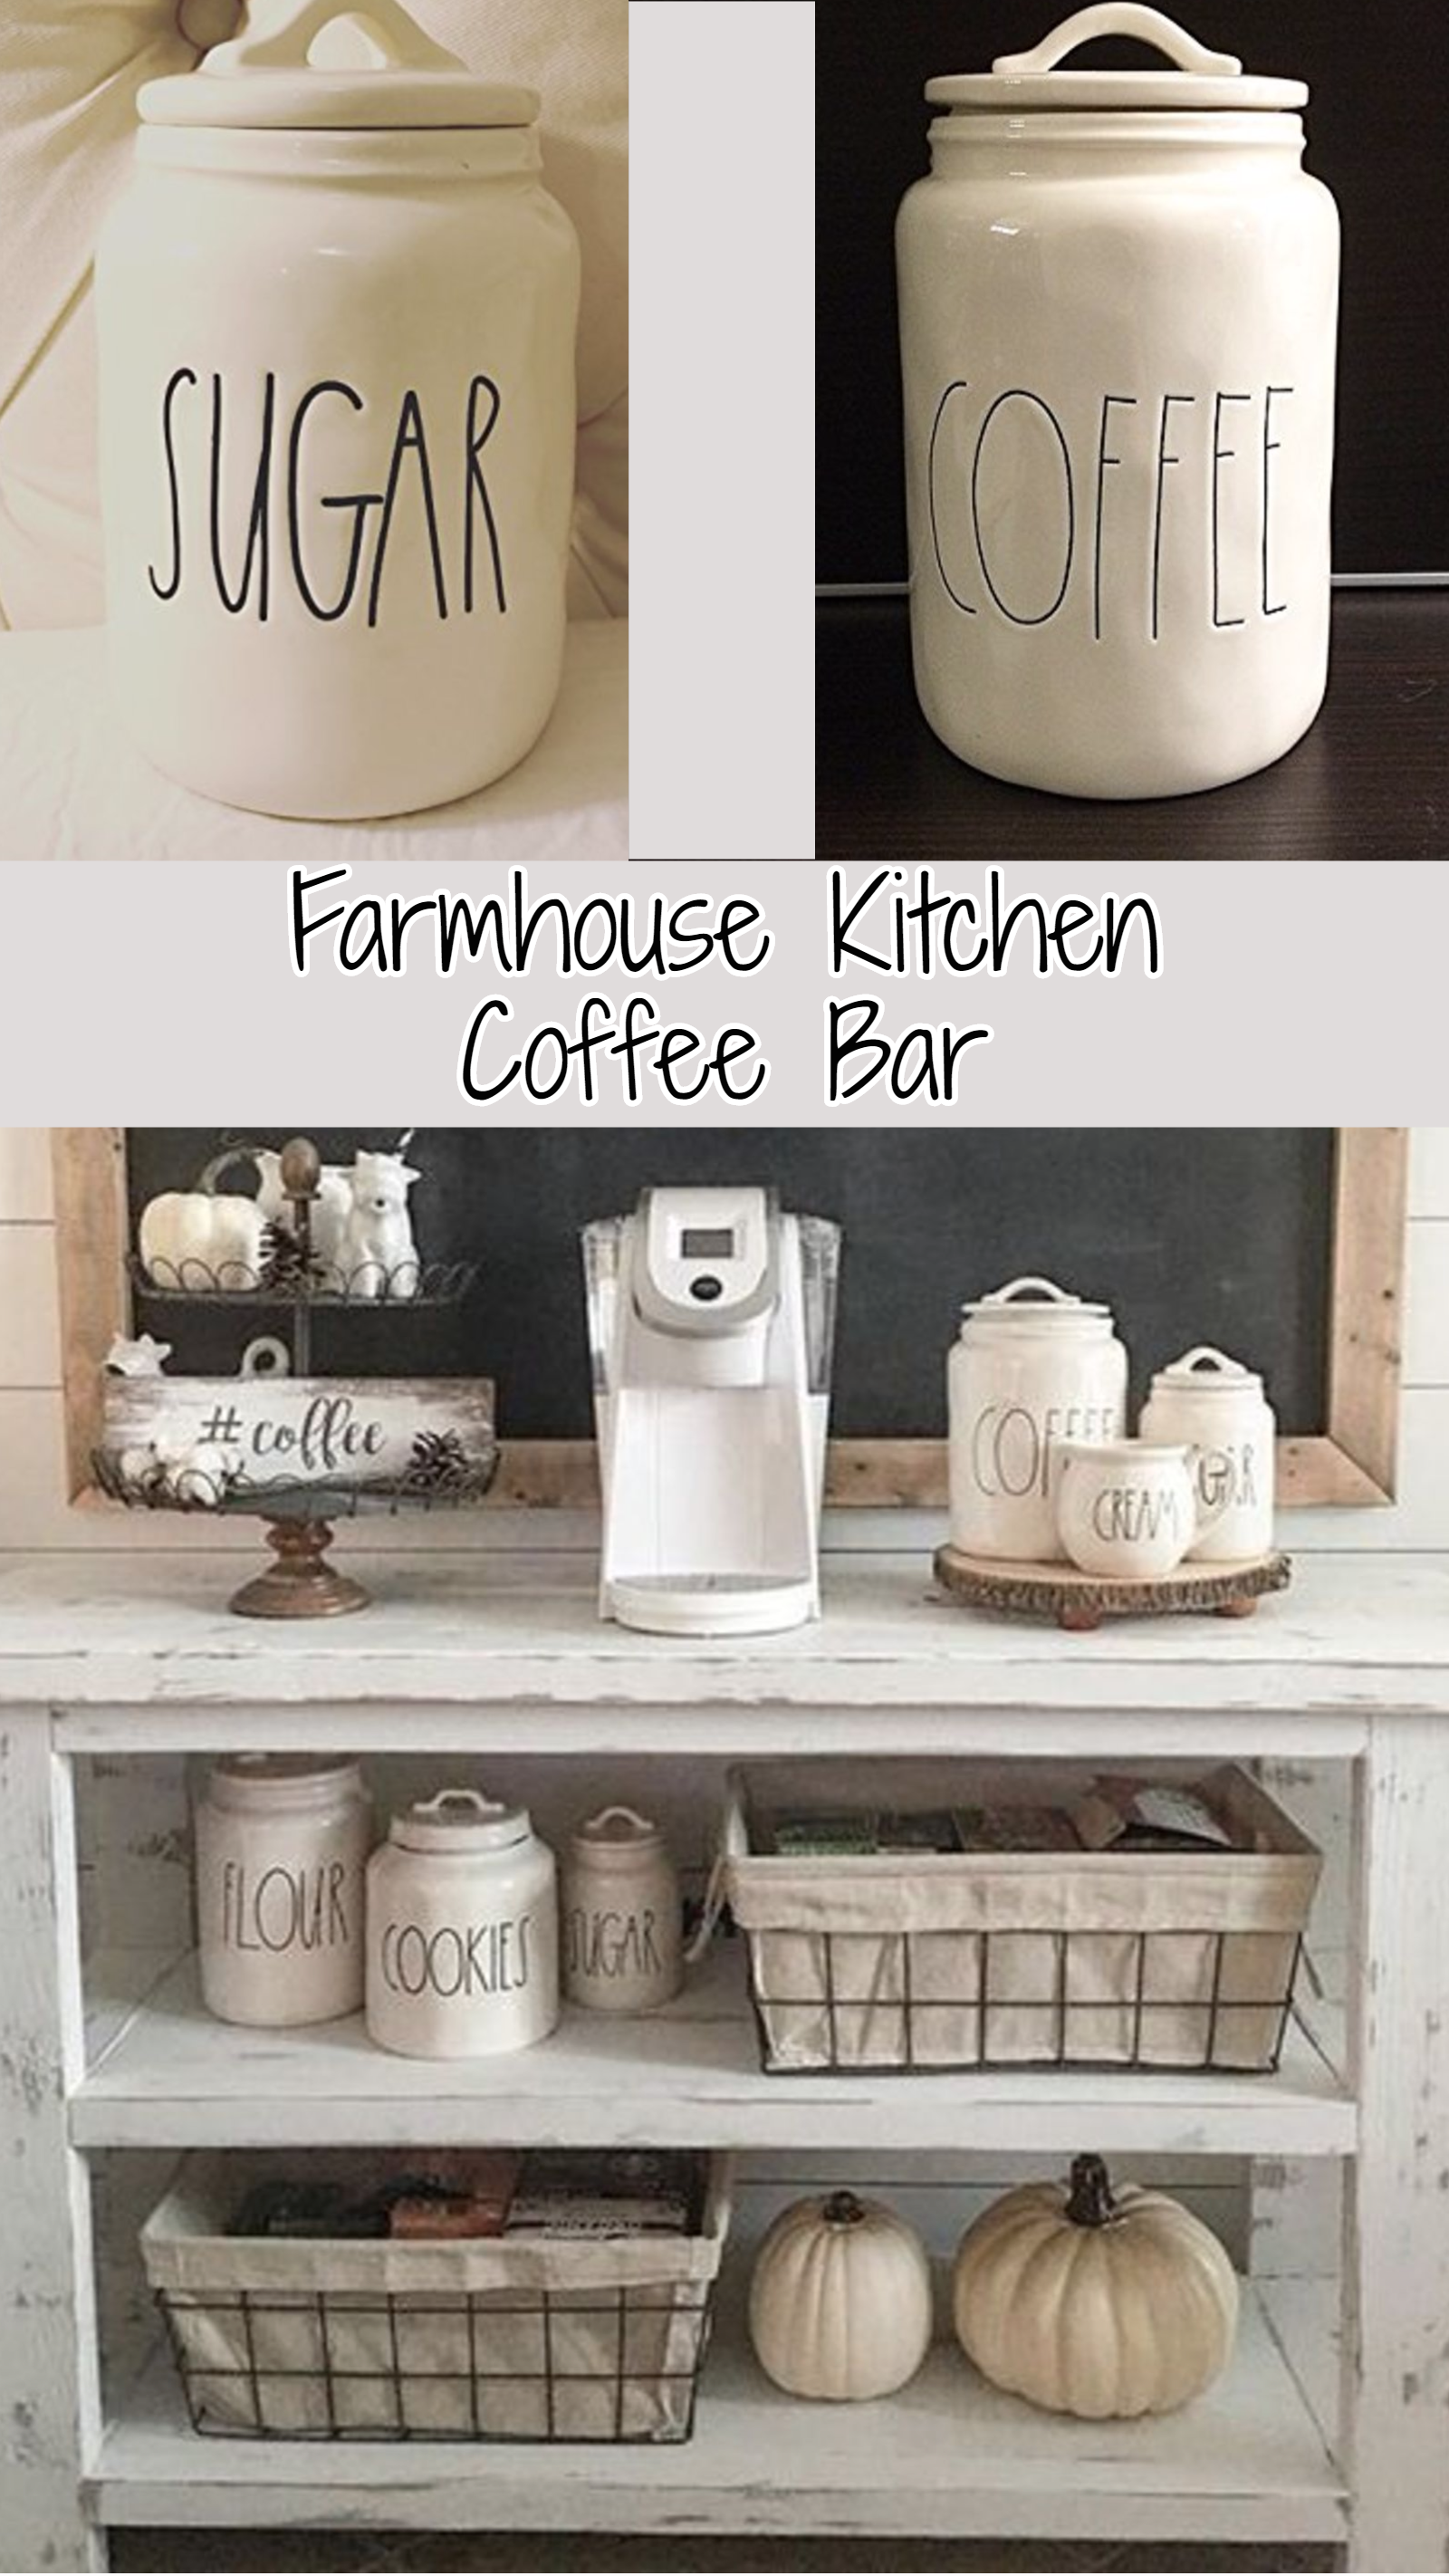 Farmhouse Kitchen Coffee Bar I Could Use Something Similar To Replace Our Cur Setup A Old Outdated Microwave Cart Of Course Would Need It Large